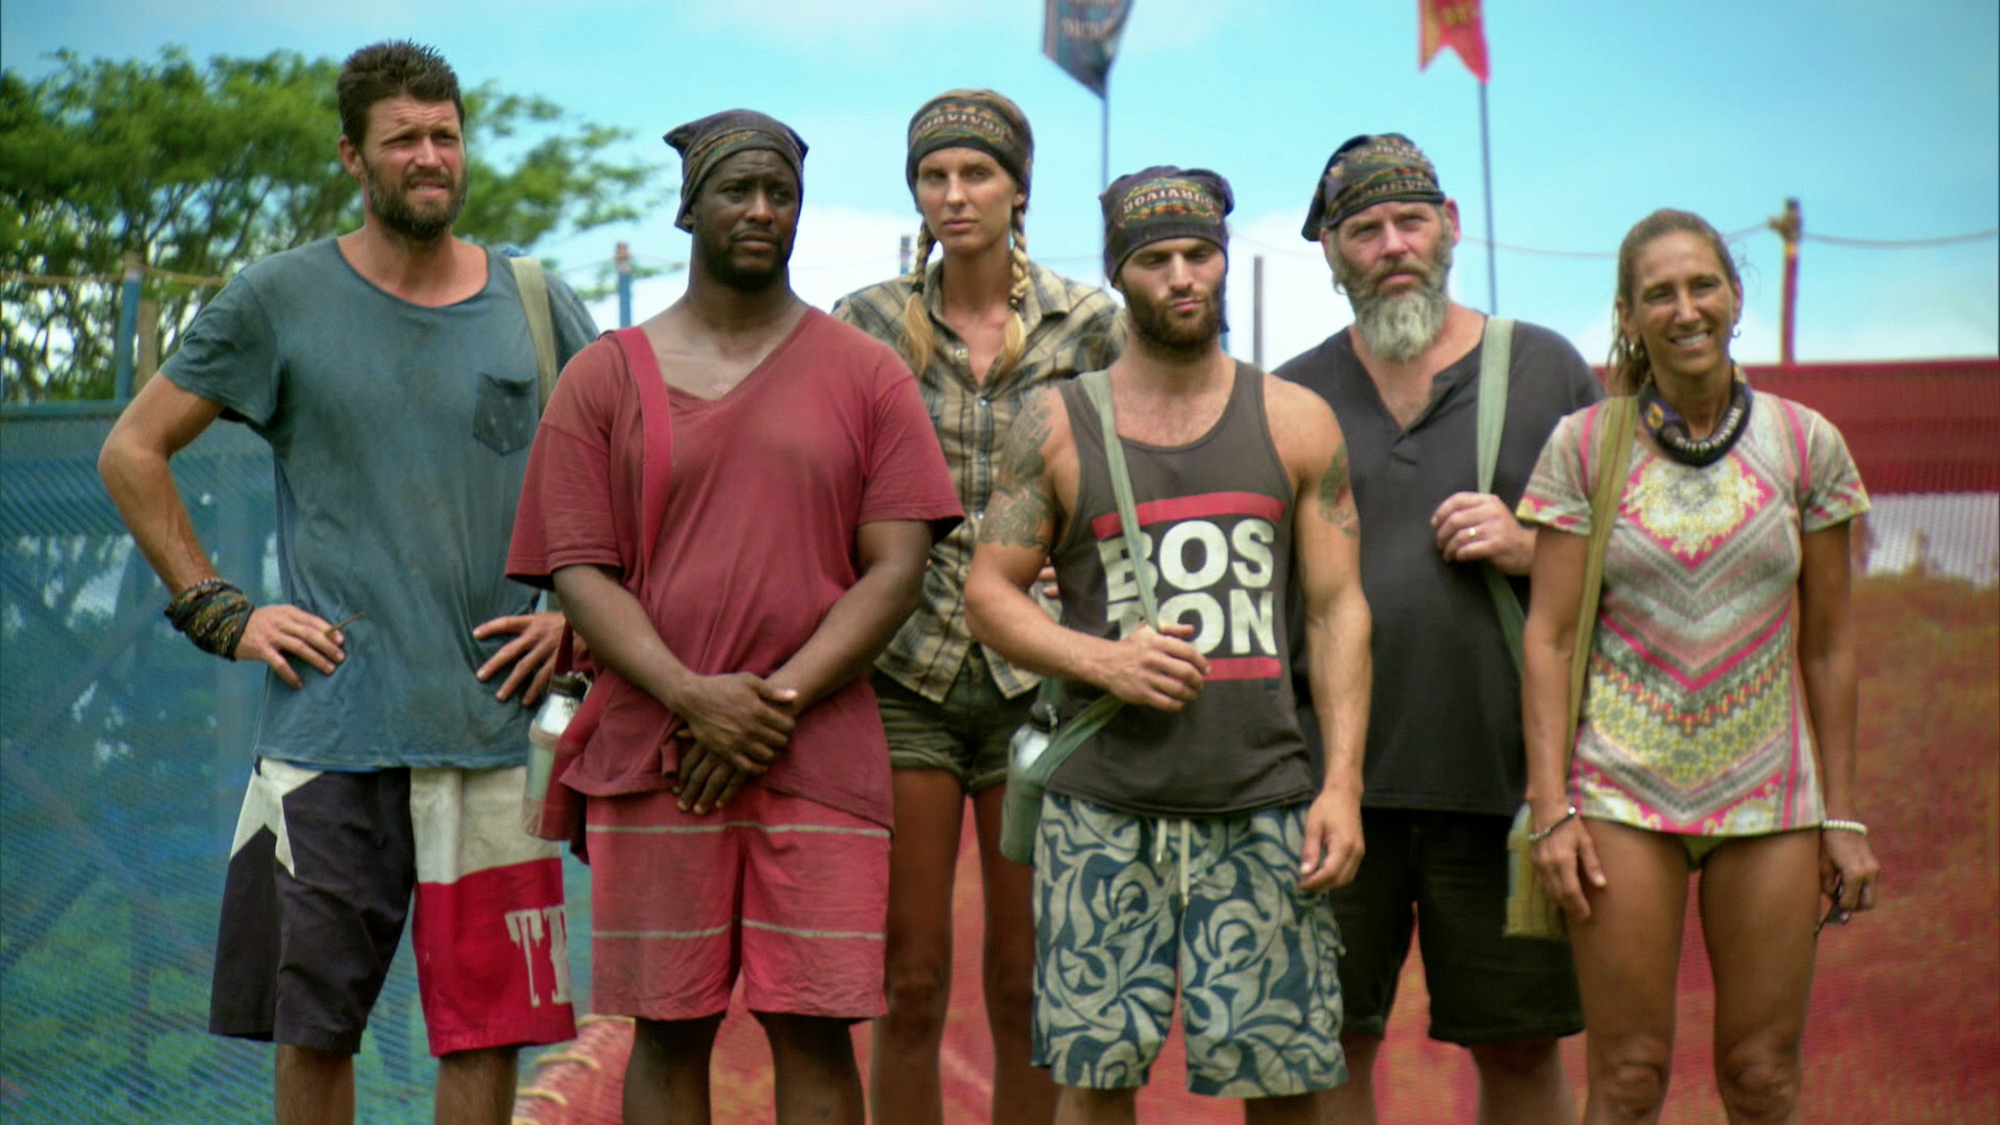 The final castaways of Survivor Season 30